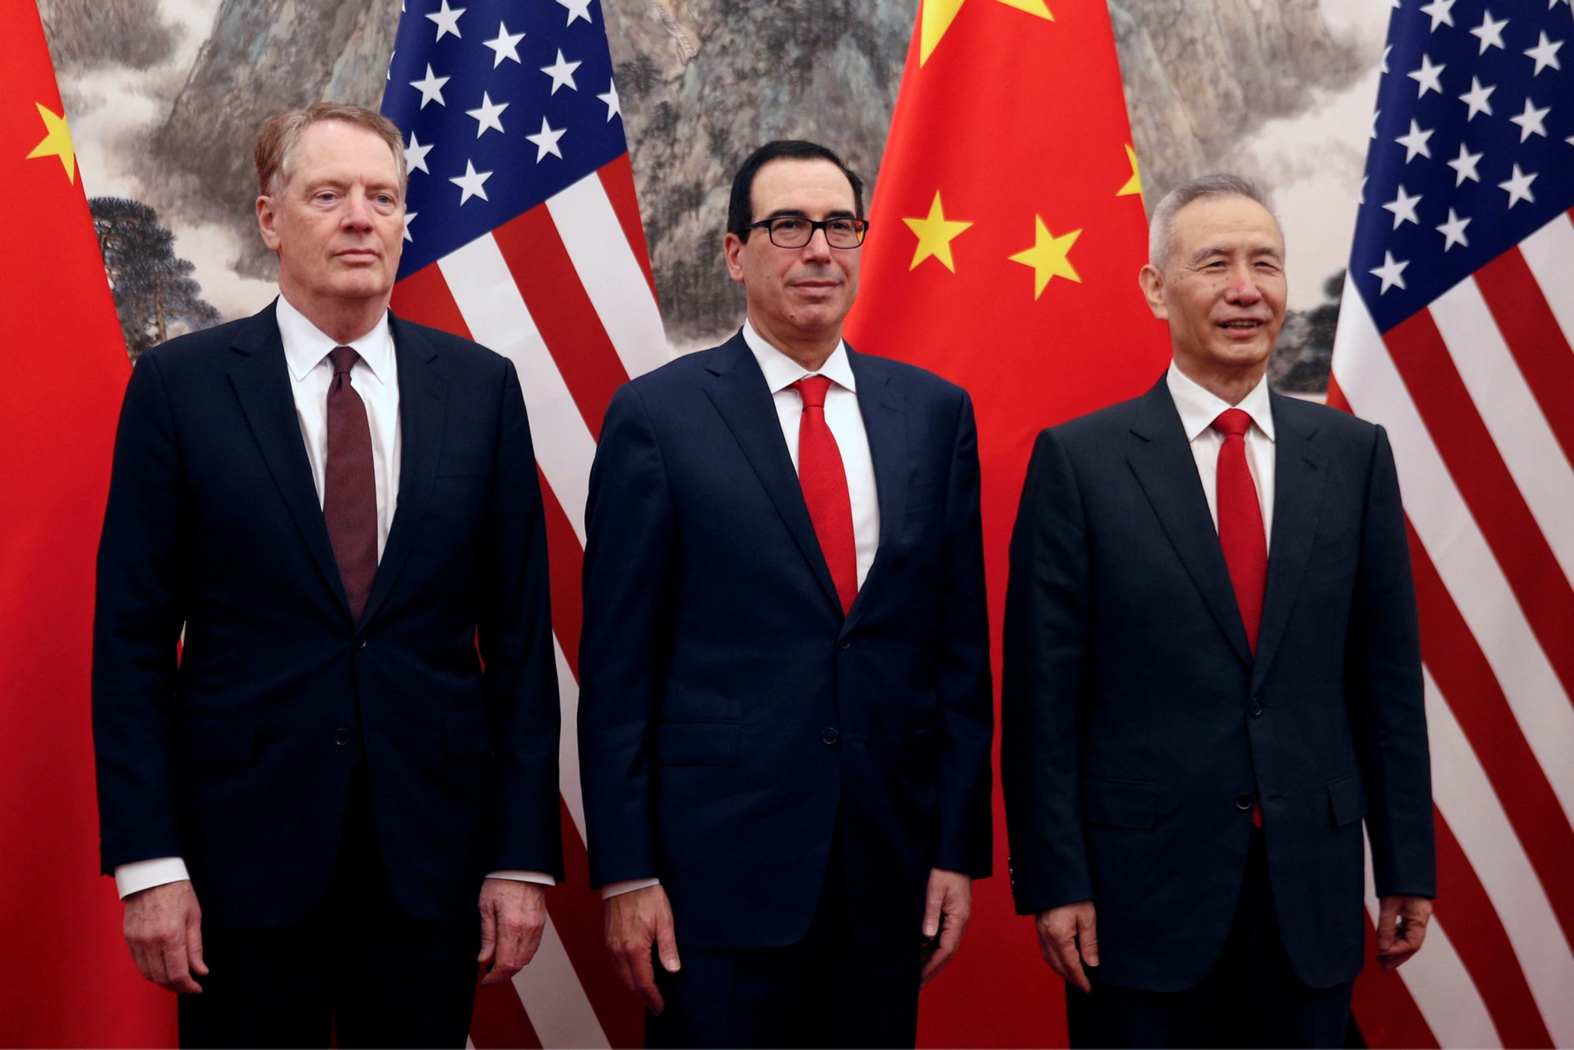 Vice Premier Liu He of China, right, will resume trade talks on Thursday in Washington with the Treasury secretary, Steven Mnuchin, center, and Robert Lighthizer, the United States trade representative. Credit Pool photo by New